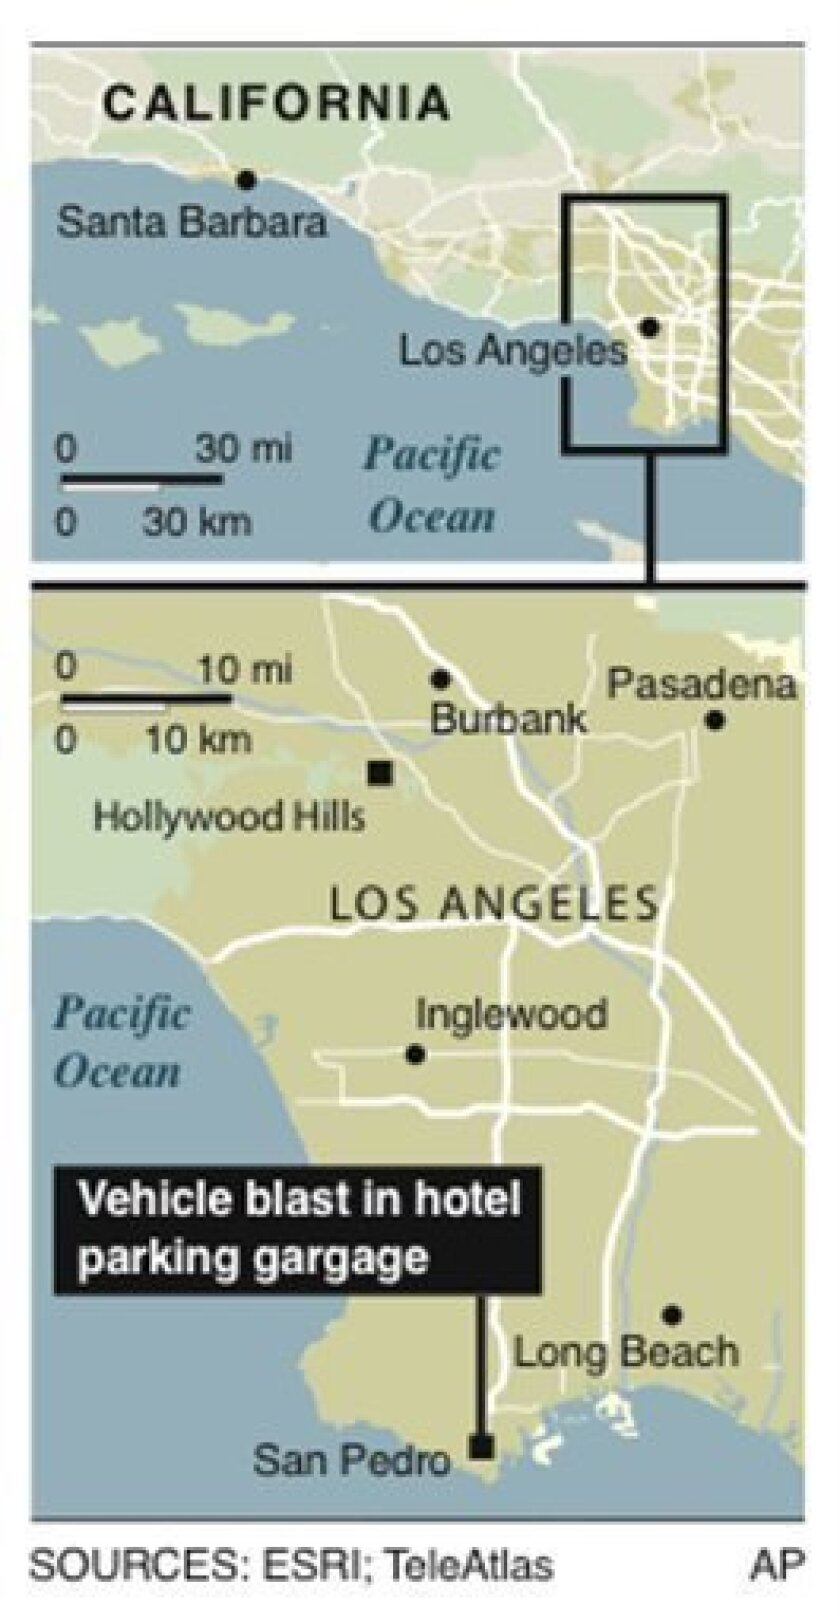 Graphic locates San Pedro area of Los Angeles where an apparent vehicle explosion took place